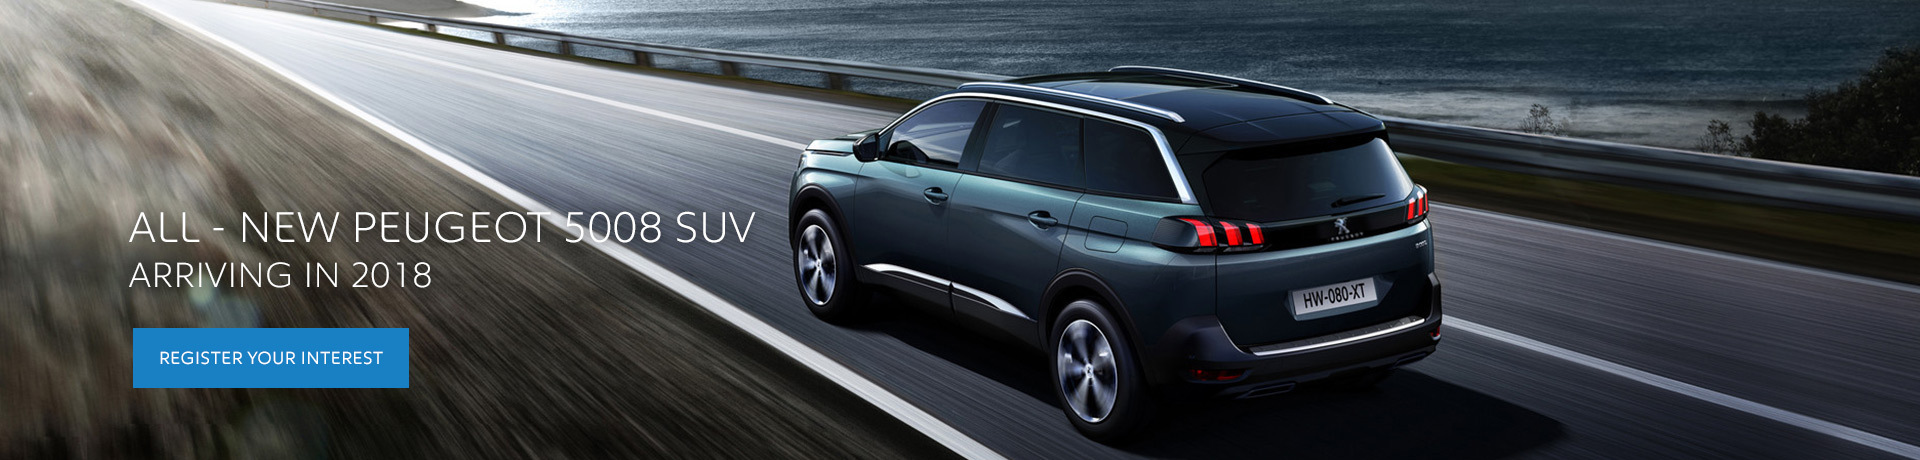 All New Peugeot 5008 SUV